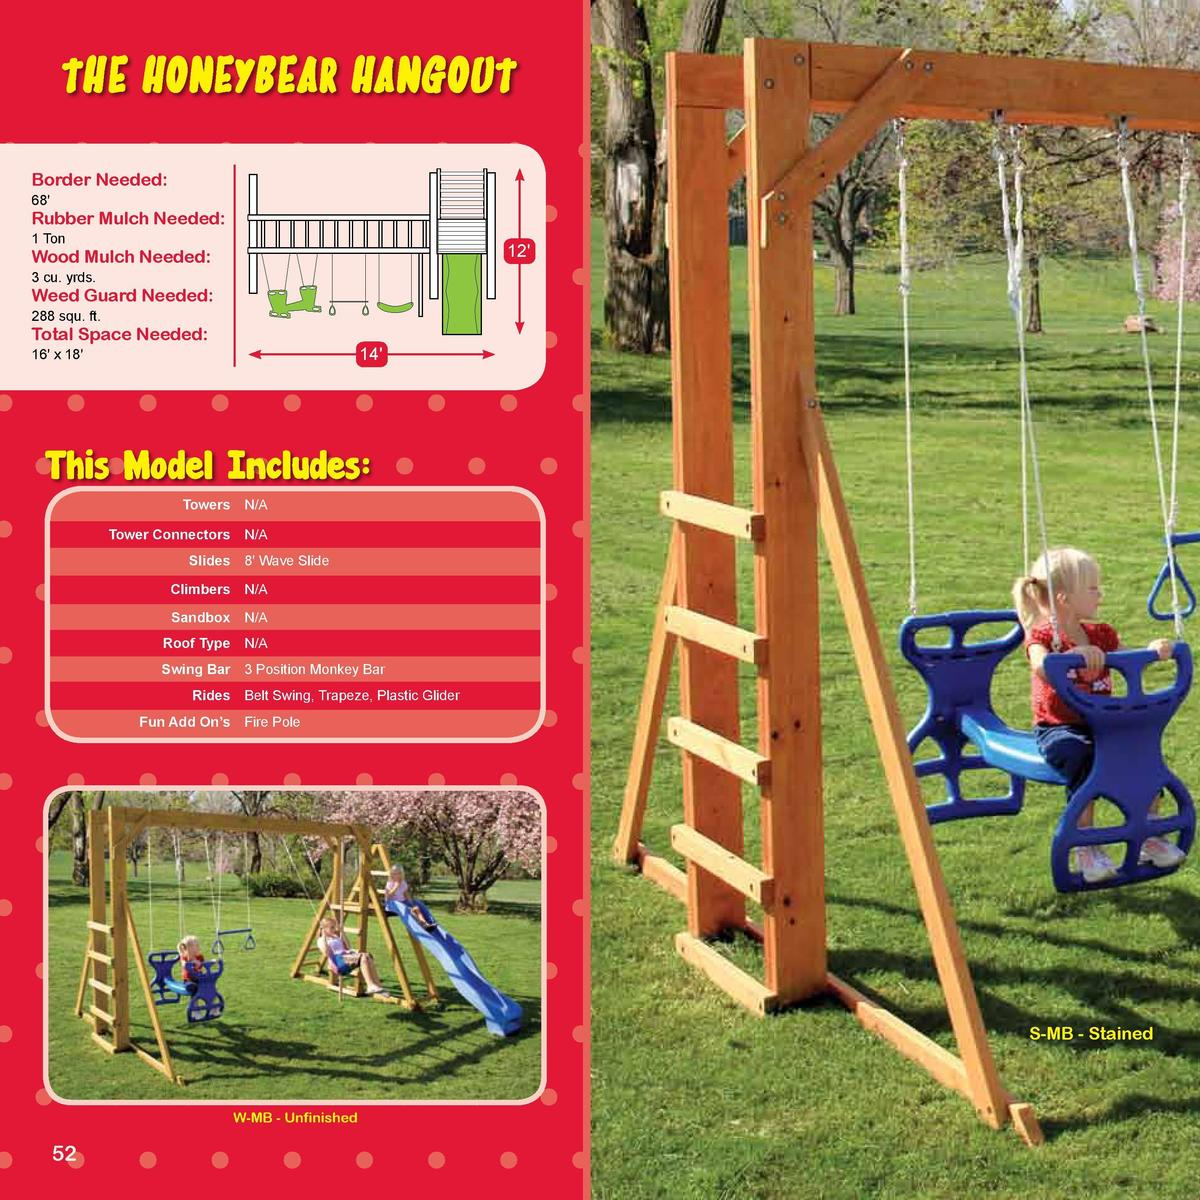 TEDDY BEAR SERIES  The Honeybear Hangout  -SERIES-  Border Needed   68   Rubber Mulch Needed   1 Ton  12   Wood Mulch Need...